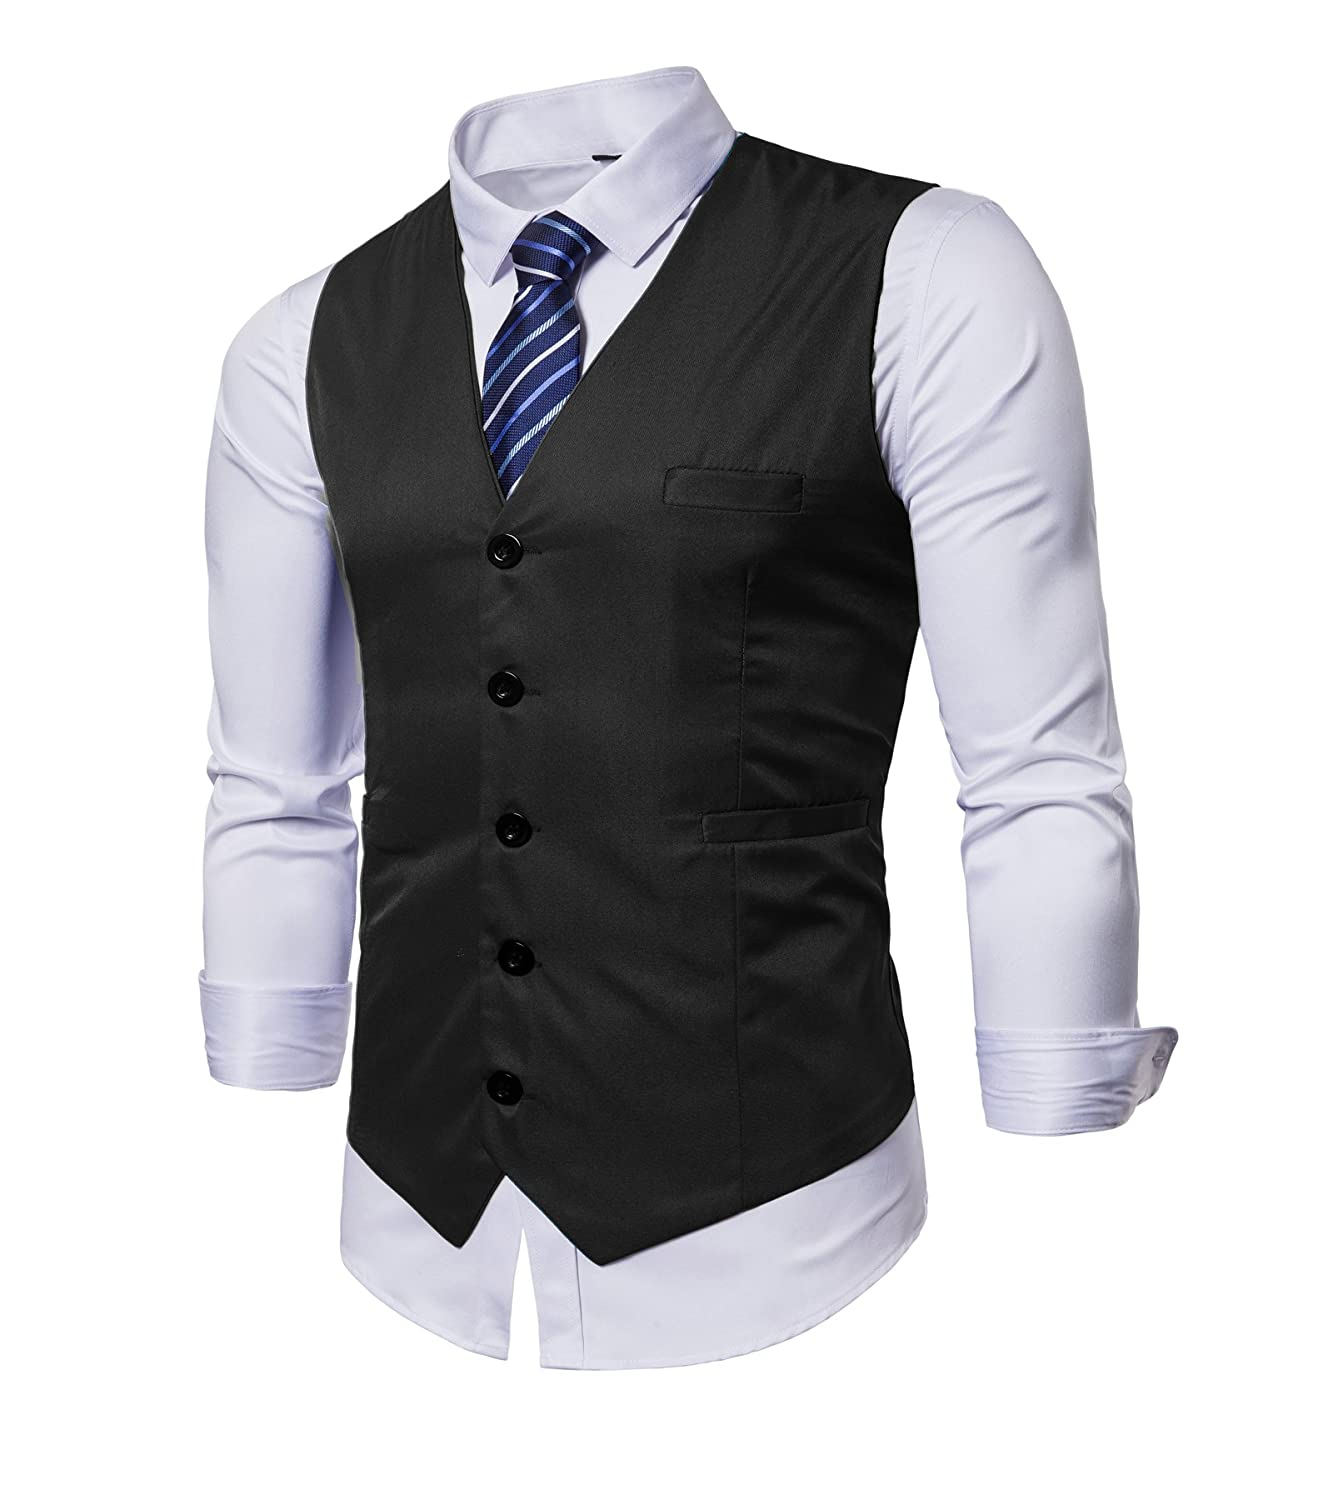 cbe4cdcc7 Men's Vest Style: V-Neck, Slim Fit, Lightweight, Adjustable Back Buckle  Strap, Classic Blue Striped Necktie. Occasion: Prom, wedding, banquet,  homecoming, ...